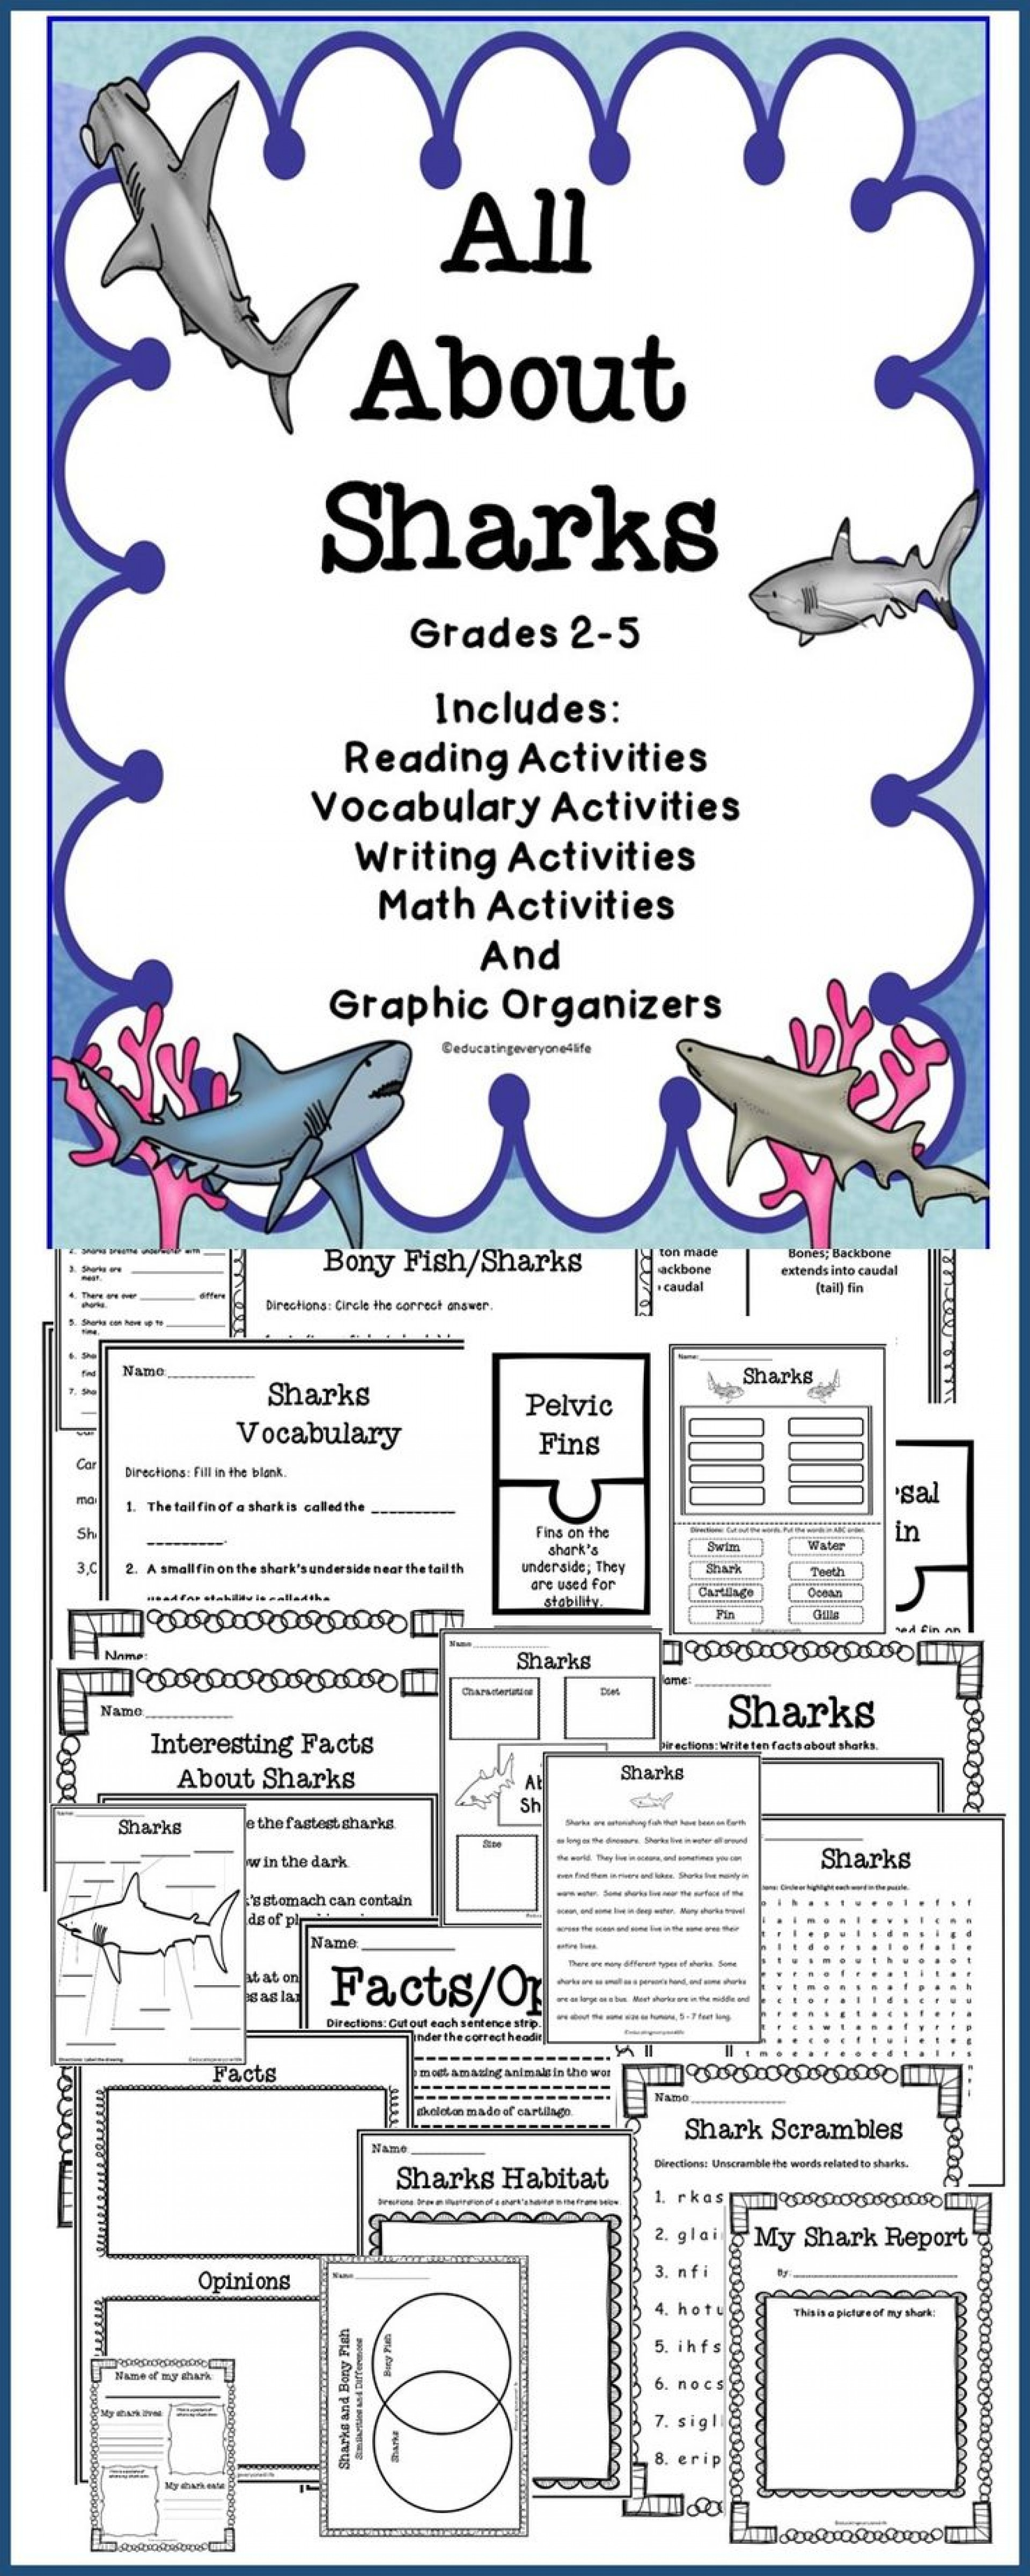 005 Essay Example Shark All About Sharks Reading Wonderful Essayshark Sign Up Introduction Topics 1920